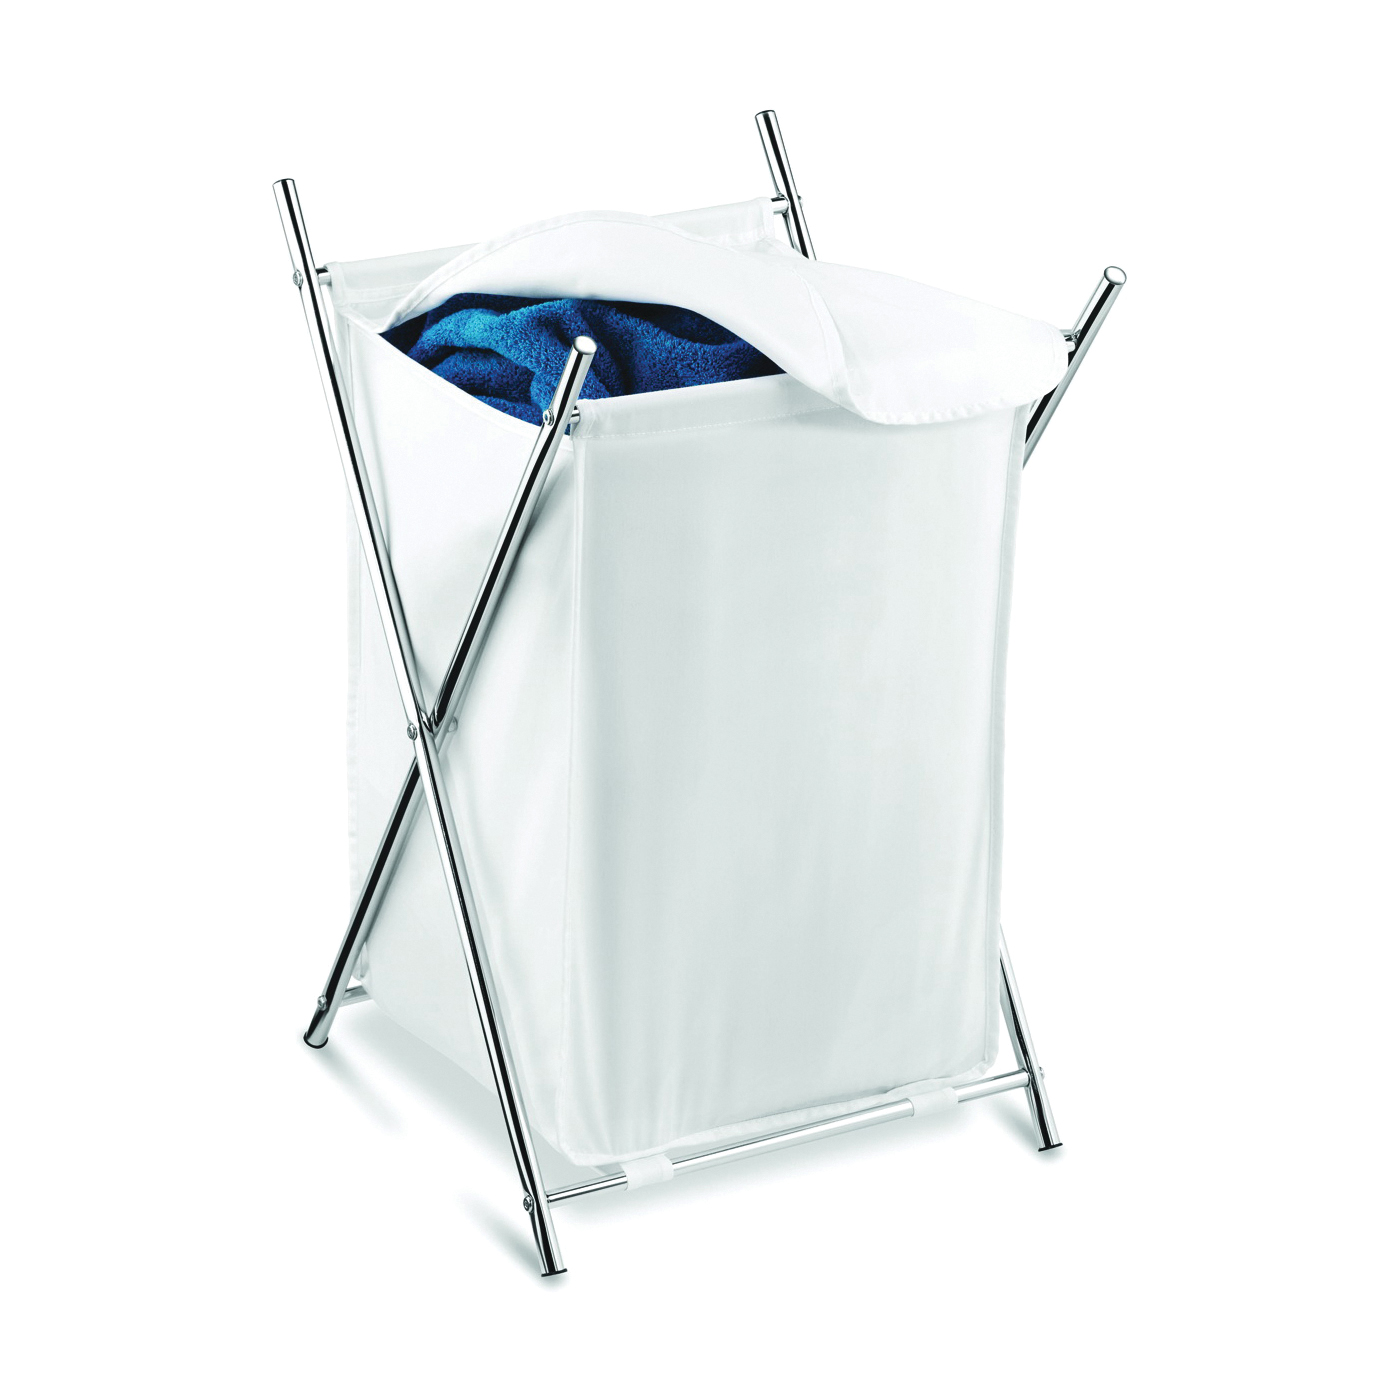 Picture of Honey-Can-Do HMP-01126 Folding Hamper, Polycotton Bag, 28 in W, 28 in H, 14-3/8 in D